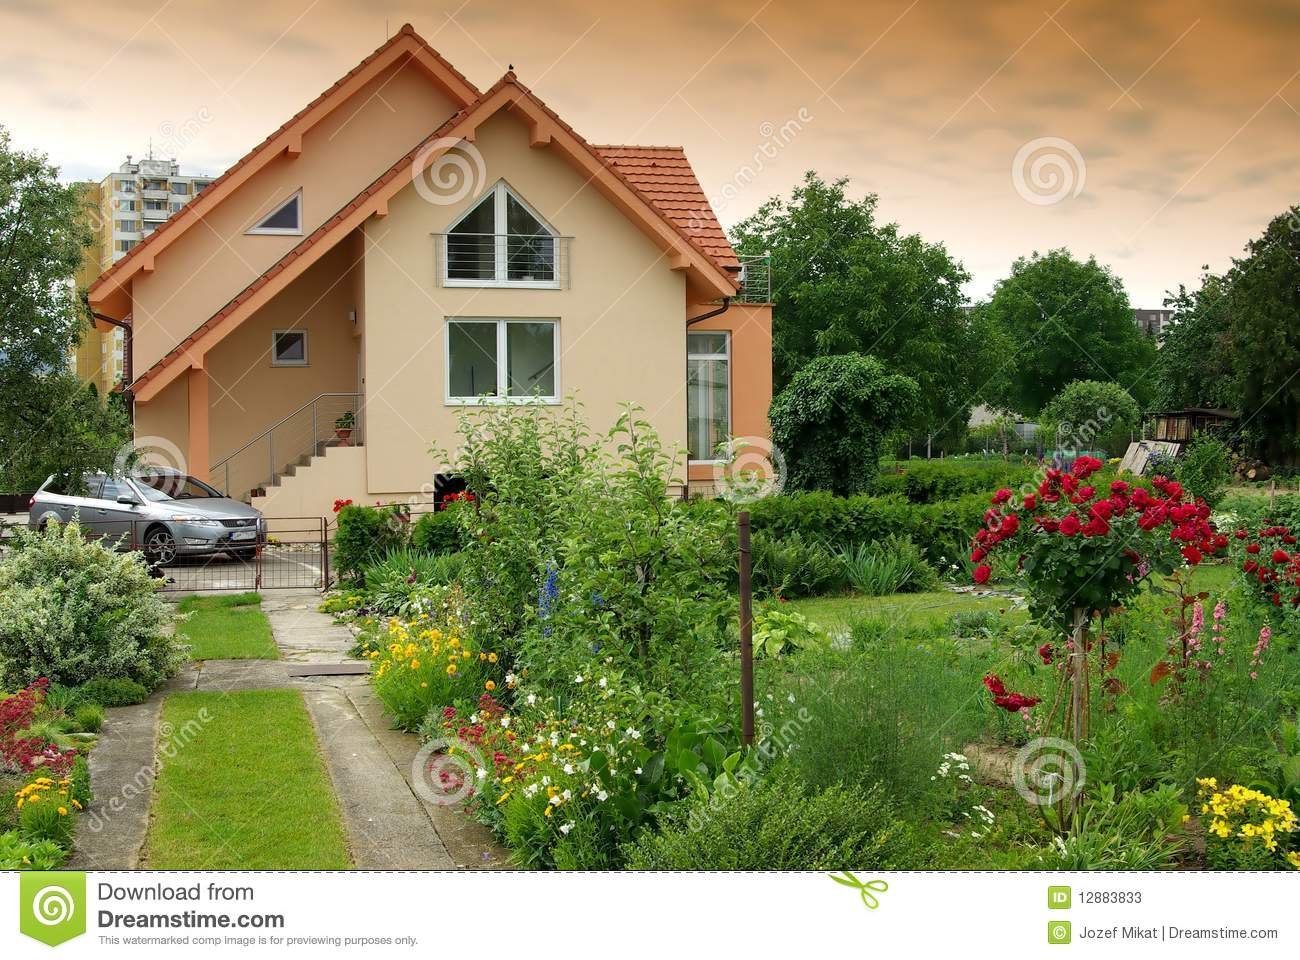 Pictures Nice Home Gardens : Nice house with garden the in